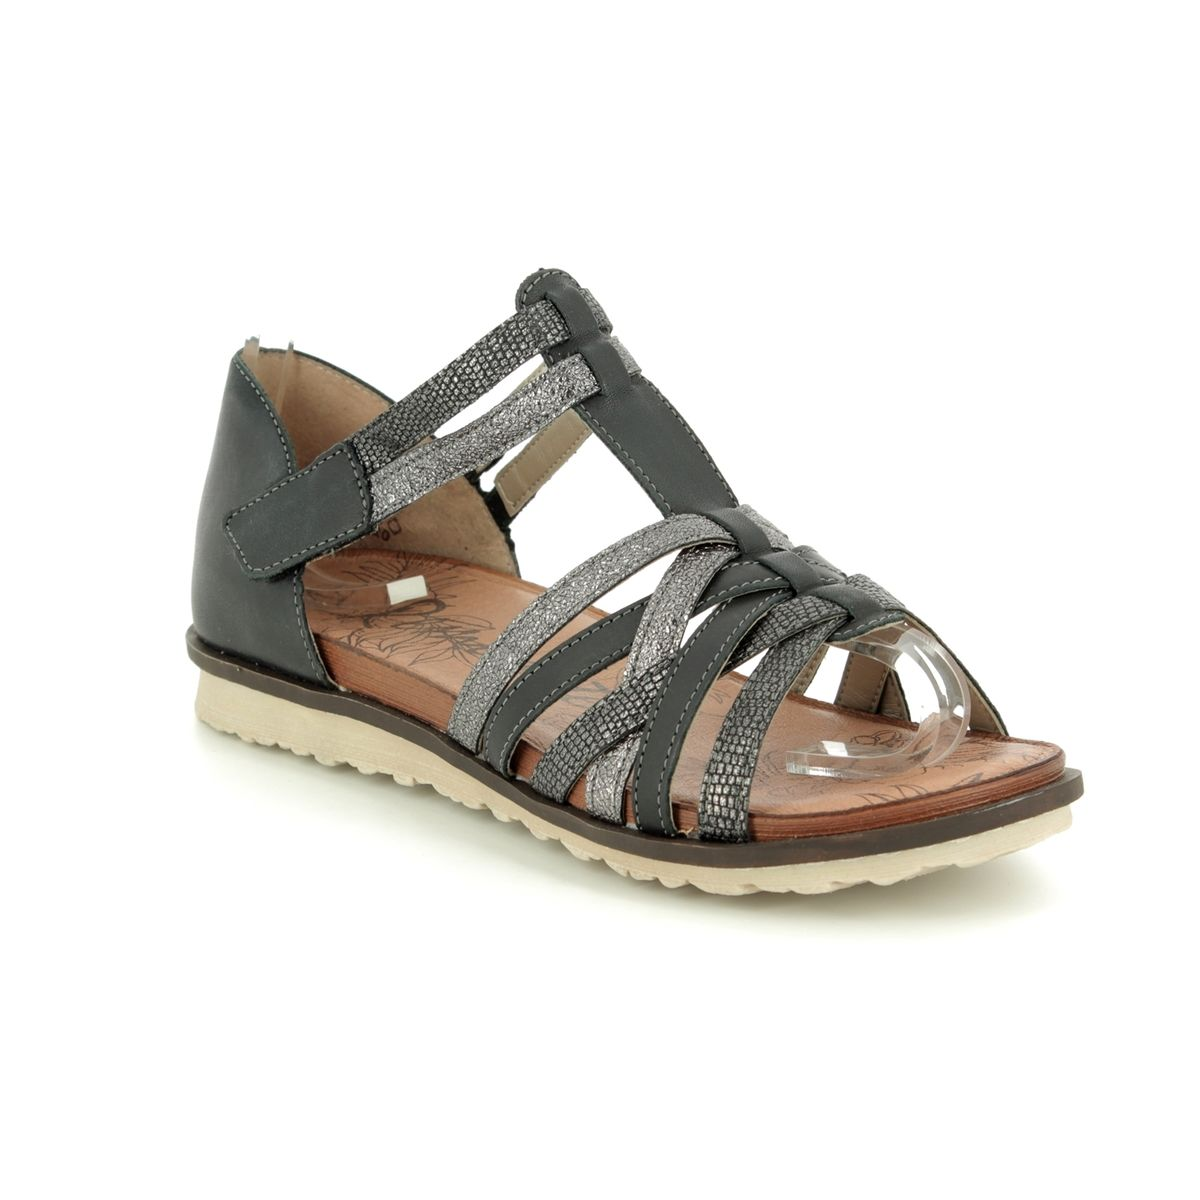 3c95eb49bcd1 Remonte Flat Sandals - Black leather - R2756-02 PROMIZE